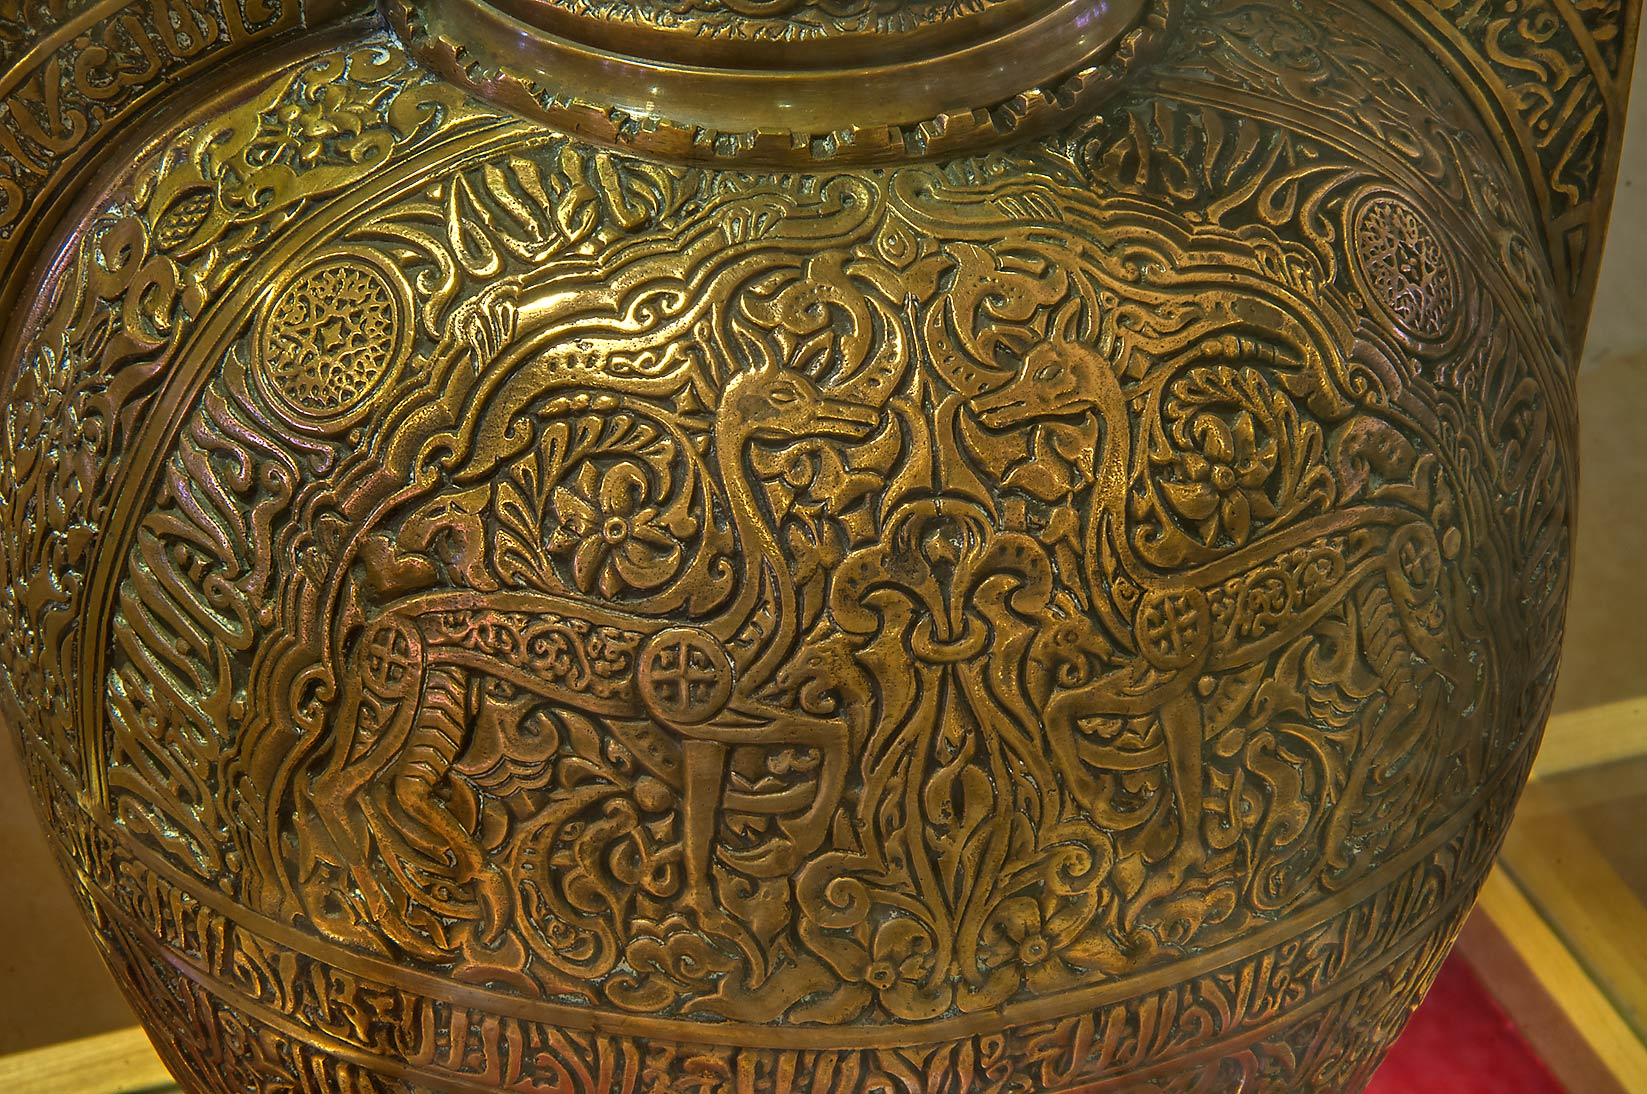 Fragment of decorated brass pot in Sheikh Faisal...Museum near Al-Shahaniya. Doha, Qatar